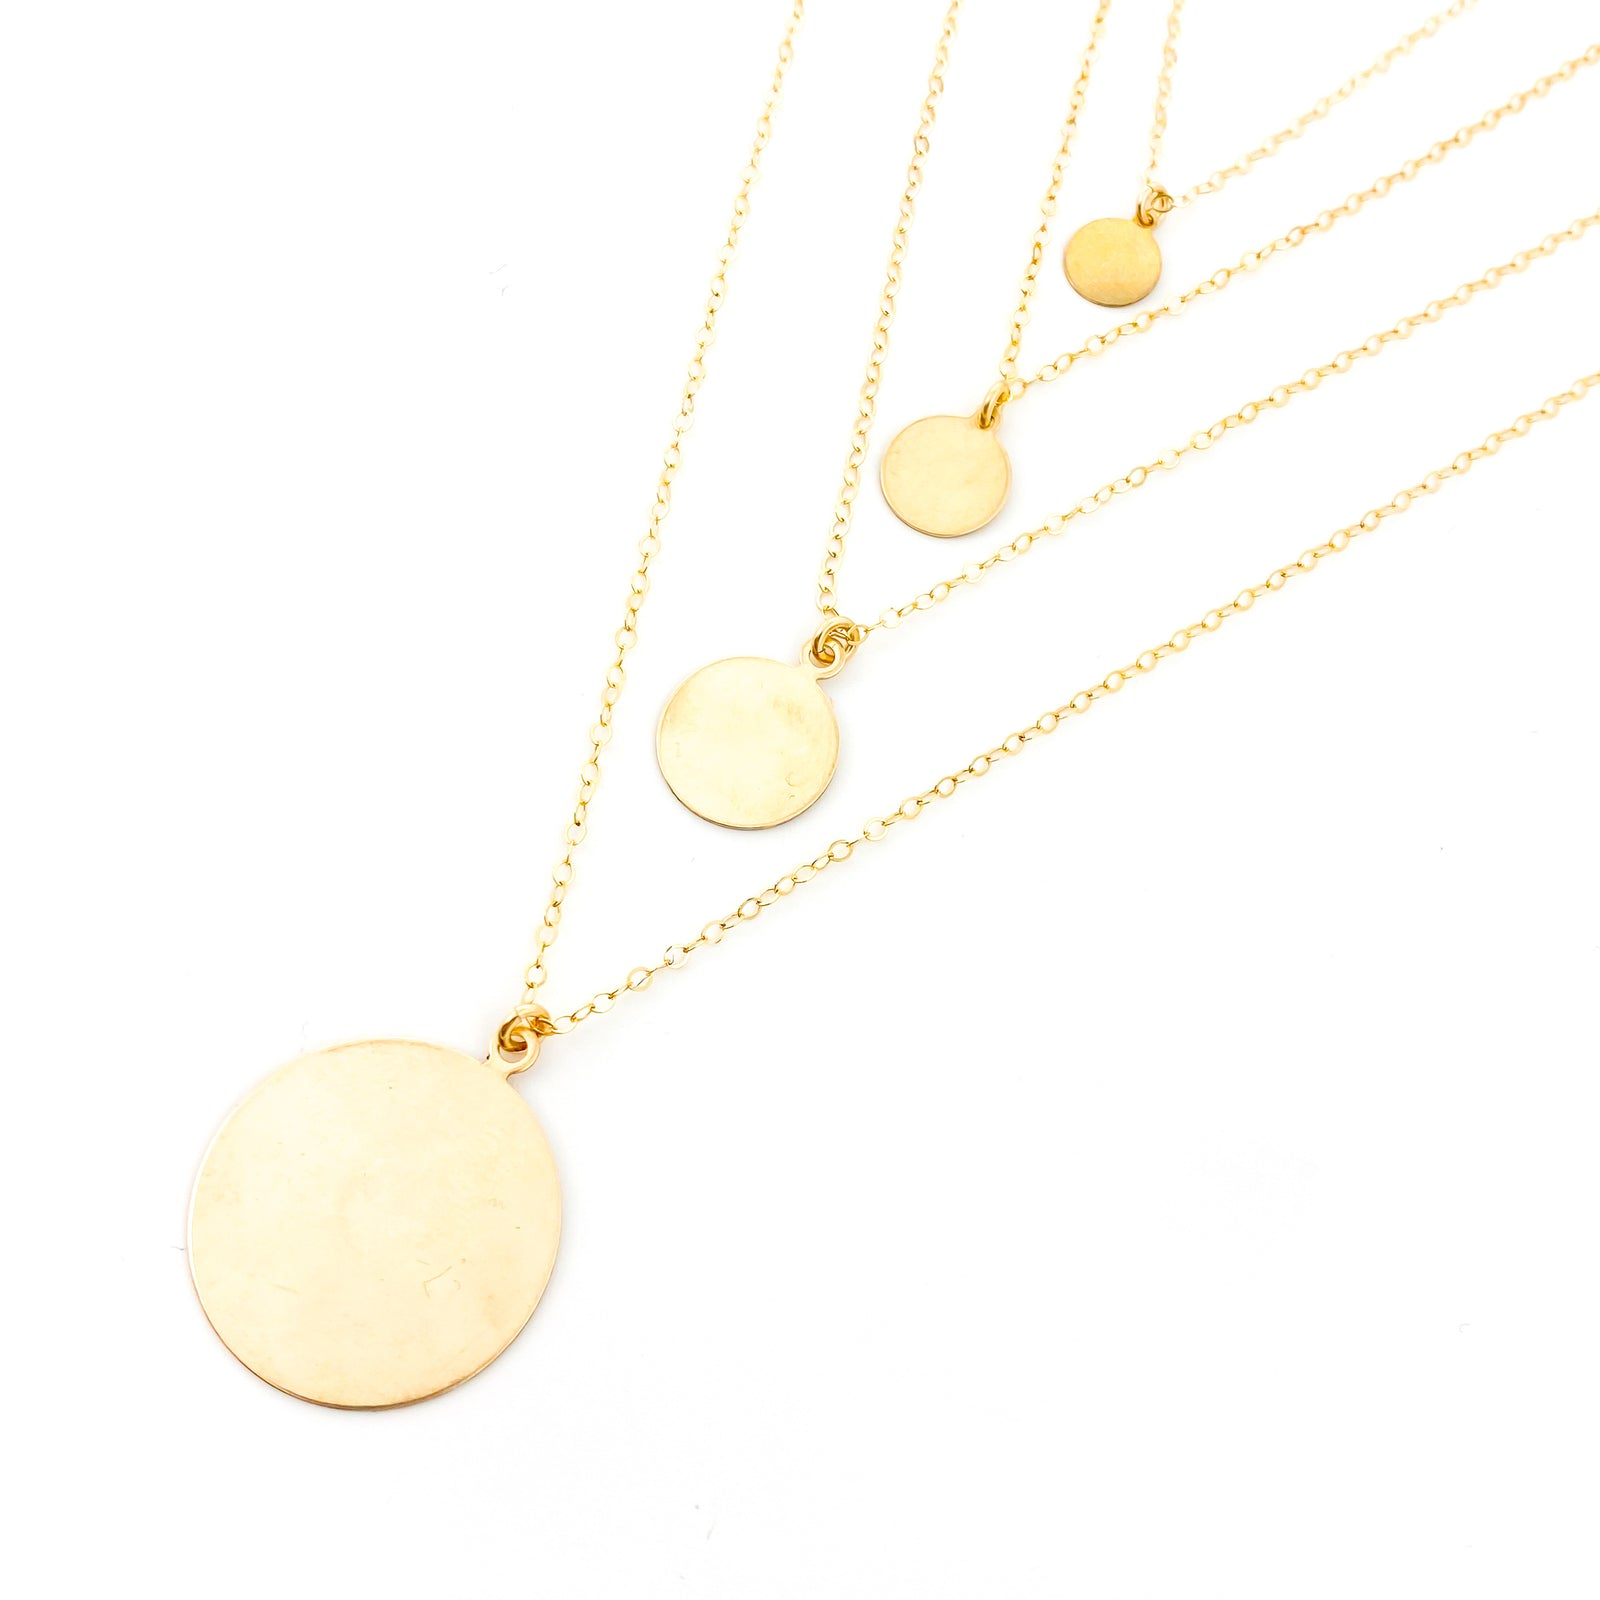 14K GOLD-FILLED DISK NECKLACES | SIZE OPTIONS